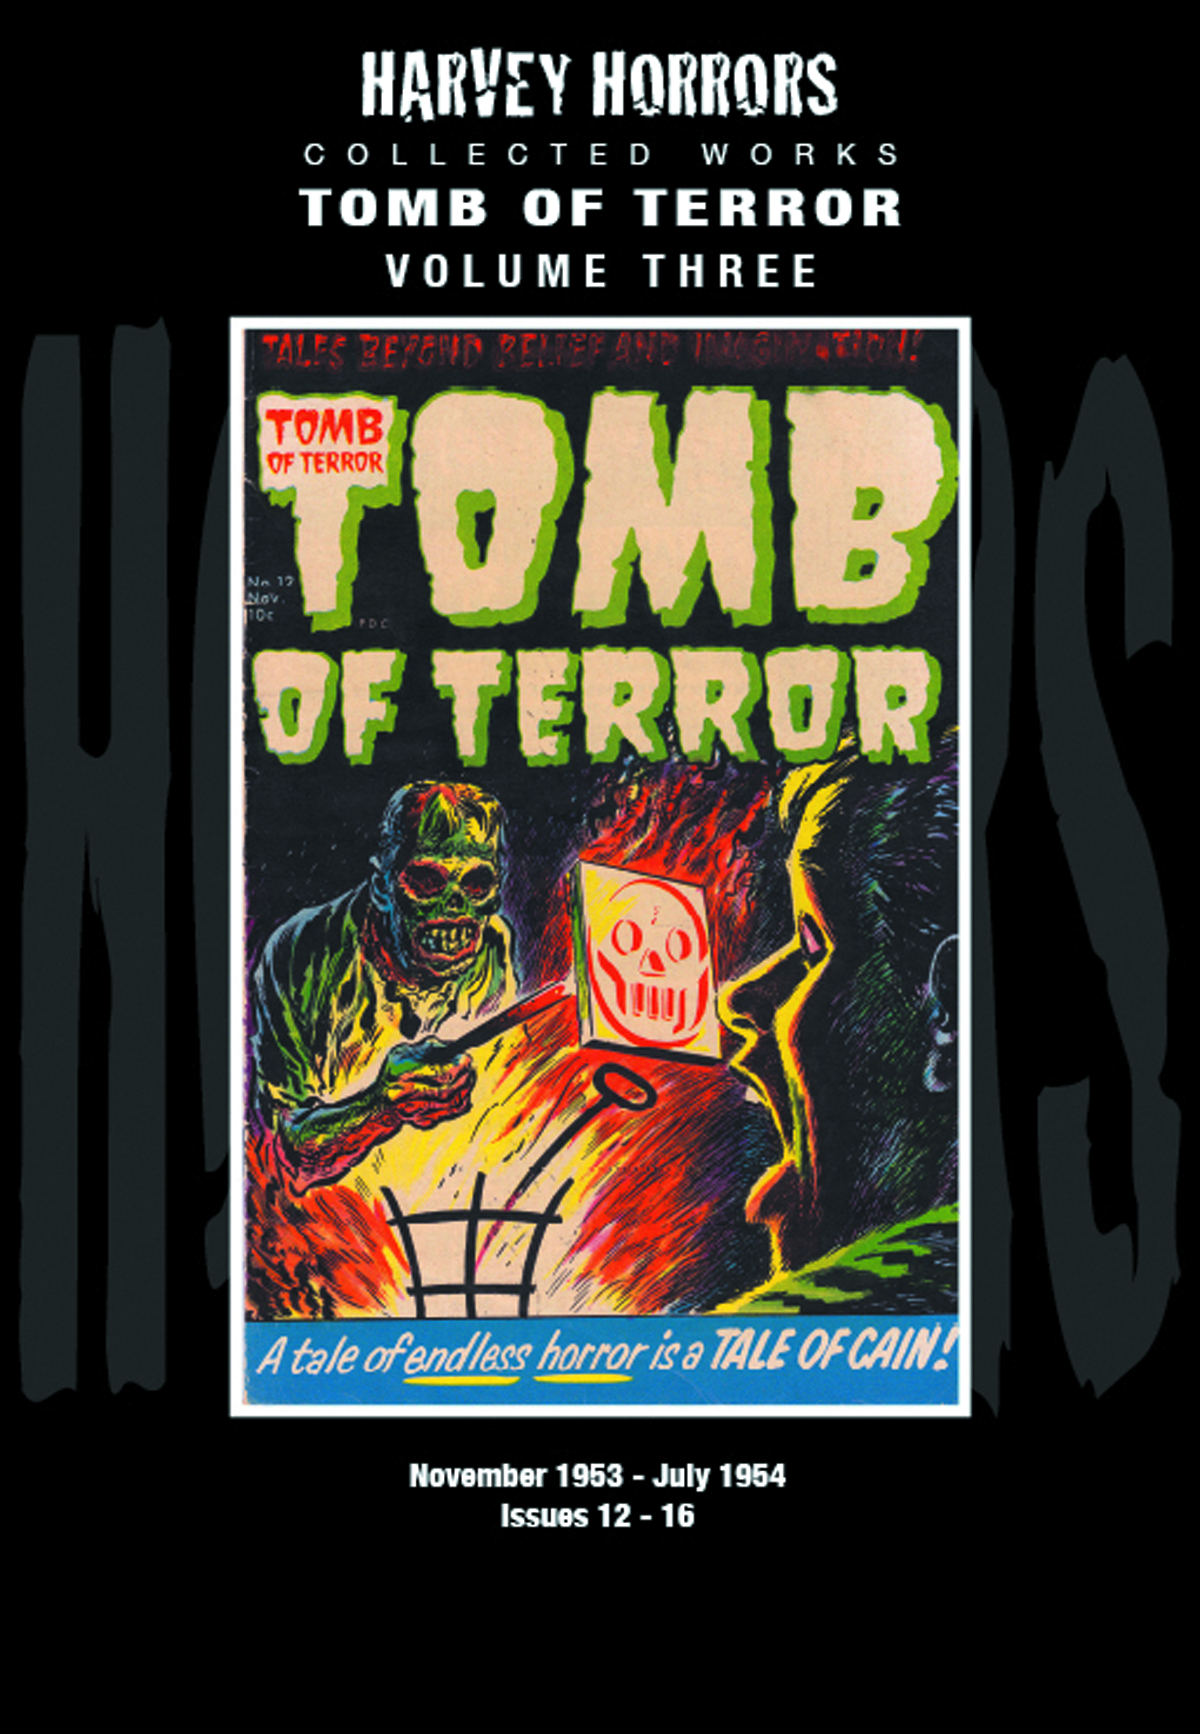 HARVEY HORRORS COLL WORKS TOMB OF TERROR HC VOL 03